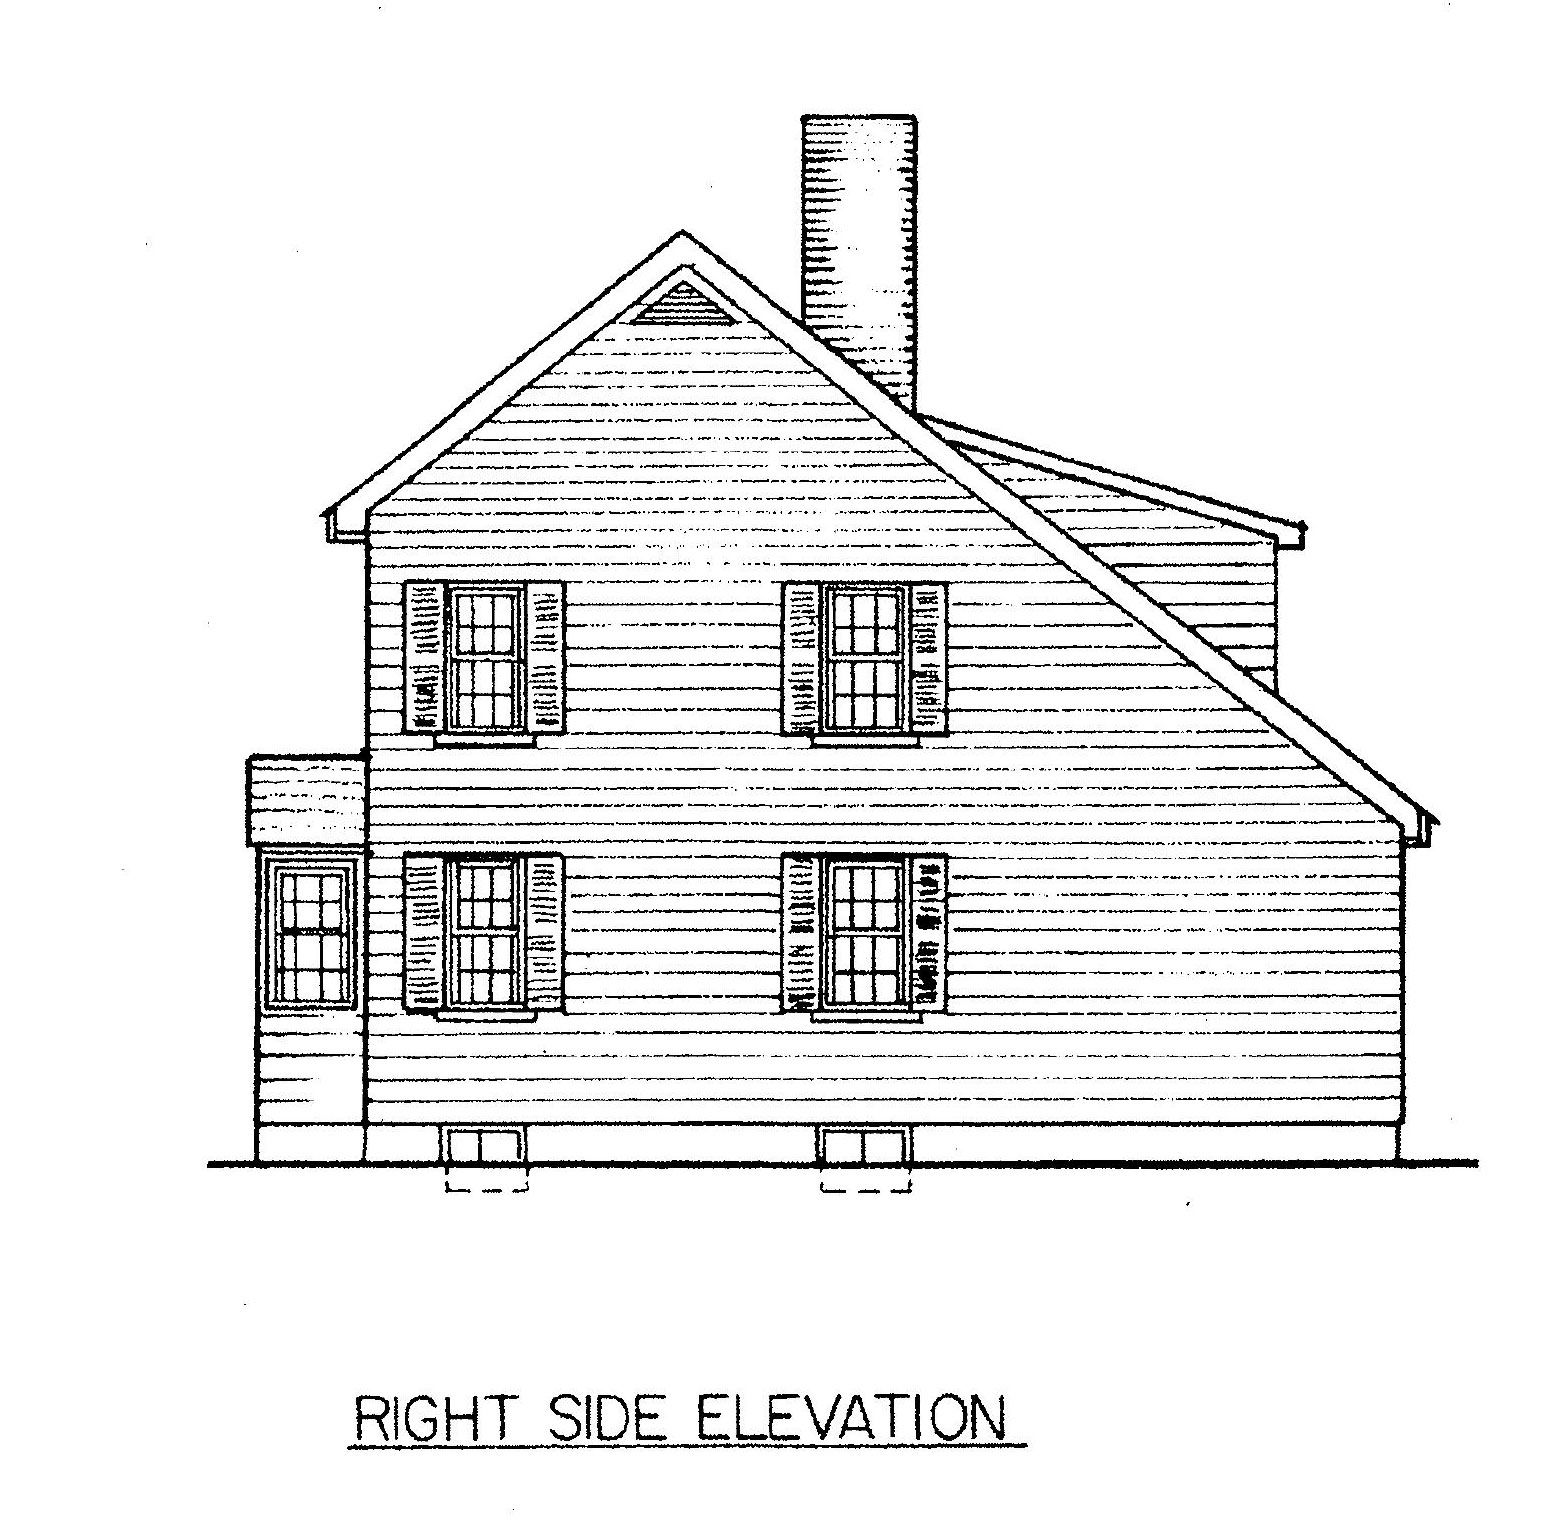 Saltbox House Plan View of Right Side | Saltbox houses ...